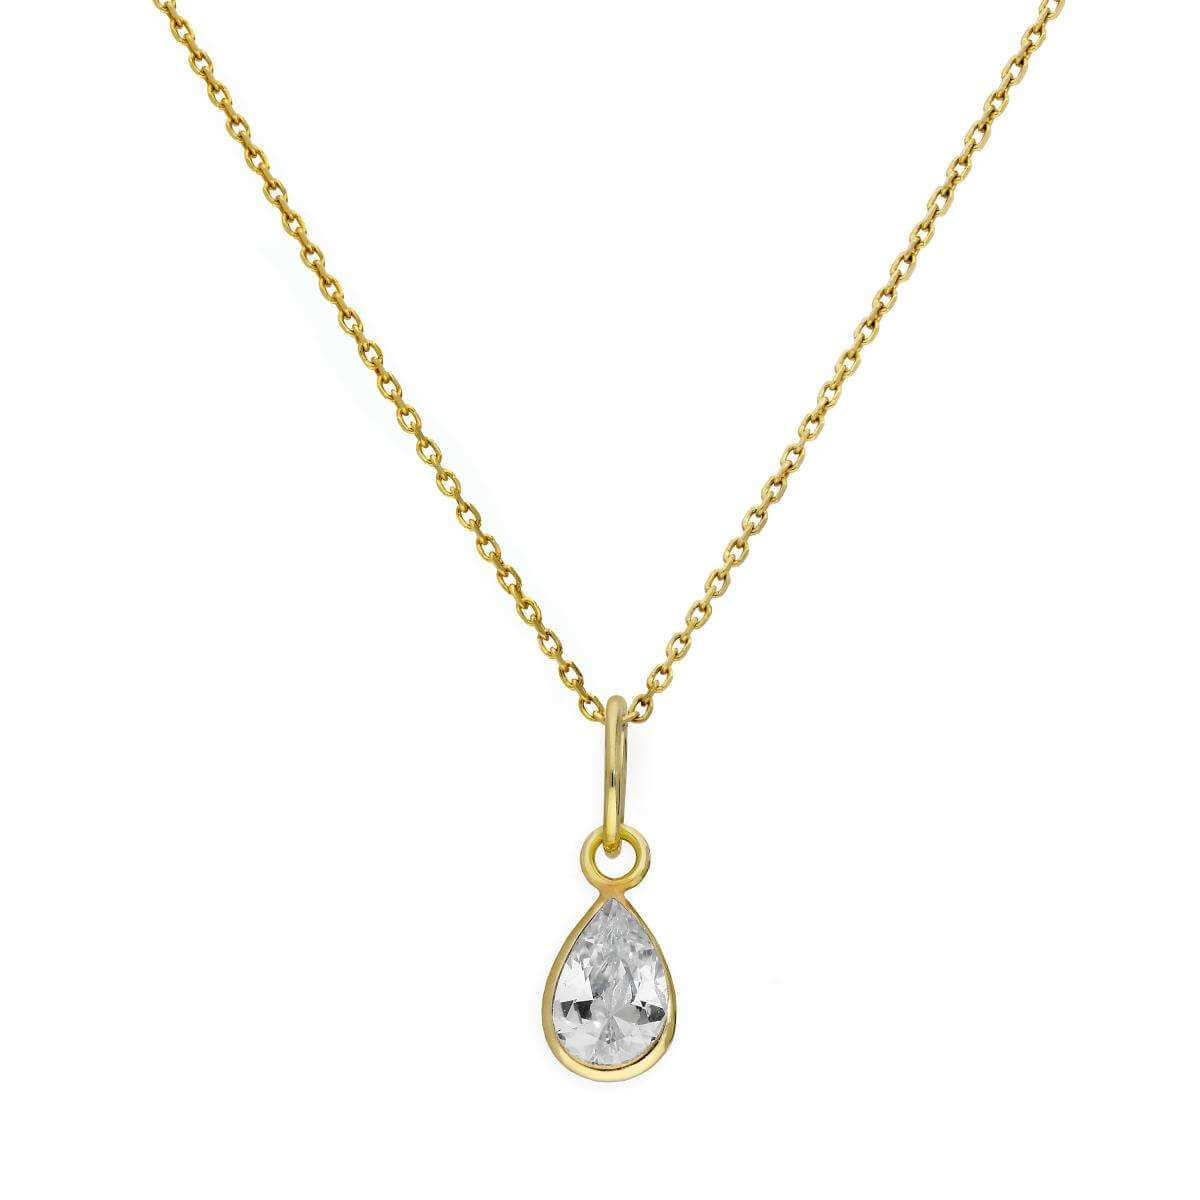 9ct Gold & Clear CZ Crystal Teardrop Pendant Necklace 16 - 20 Inches